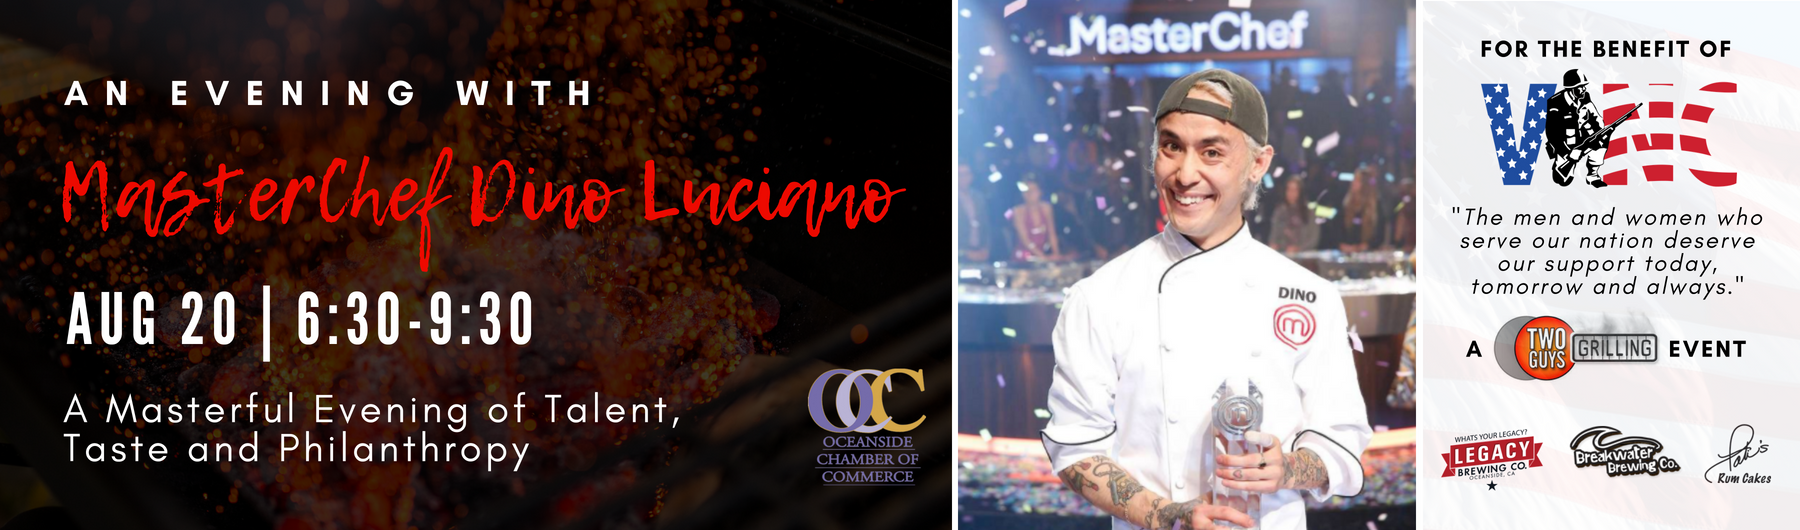 An Evening with MasterChef Dino Luciano